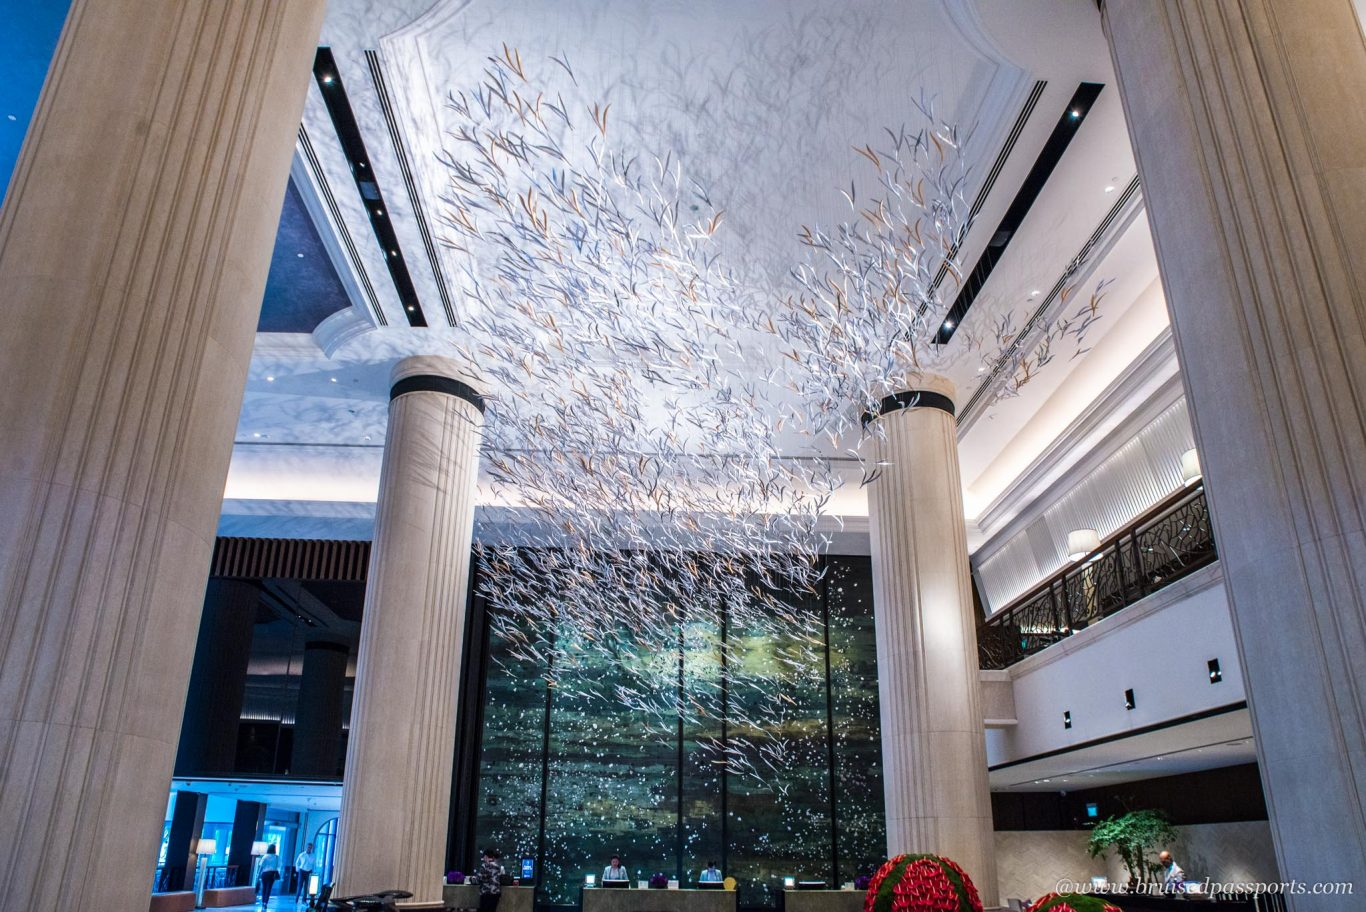 Lobby at Shangri-La Singapore